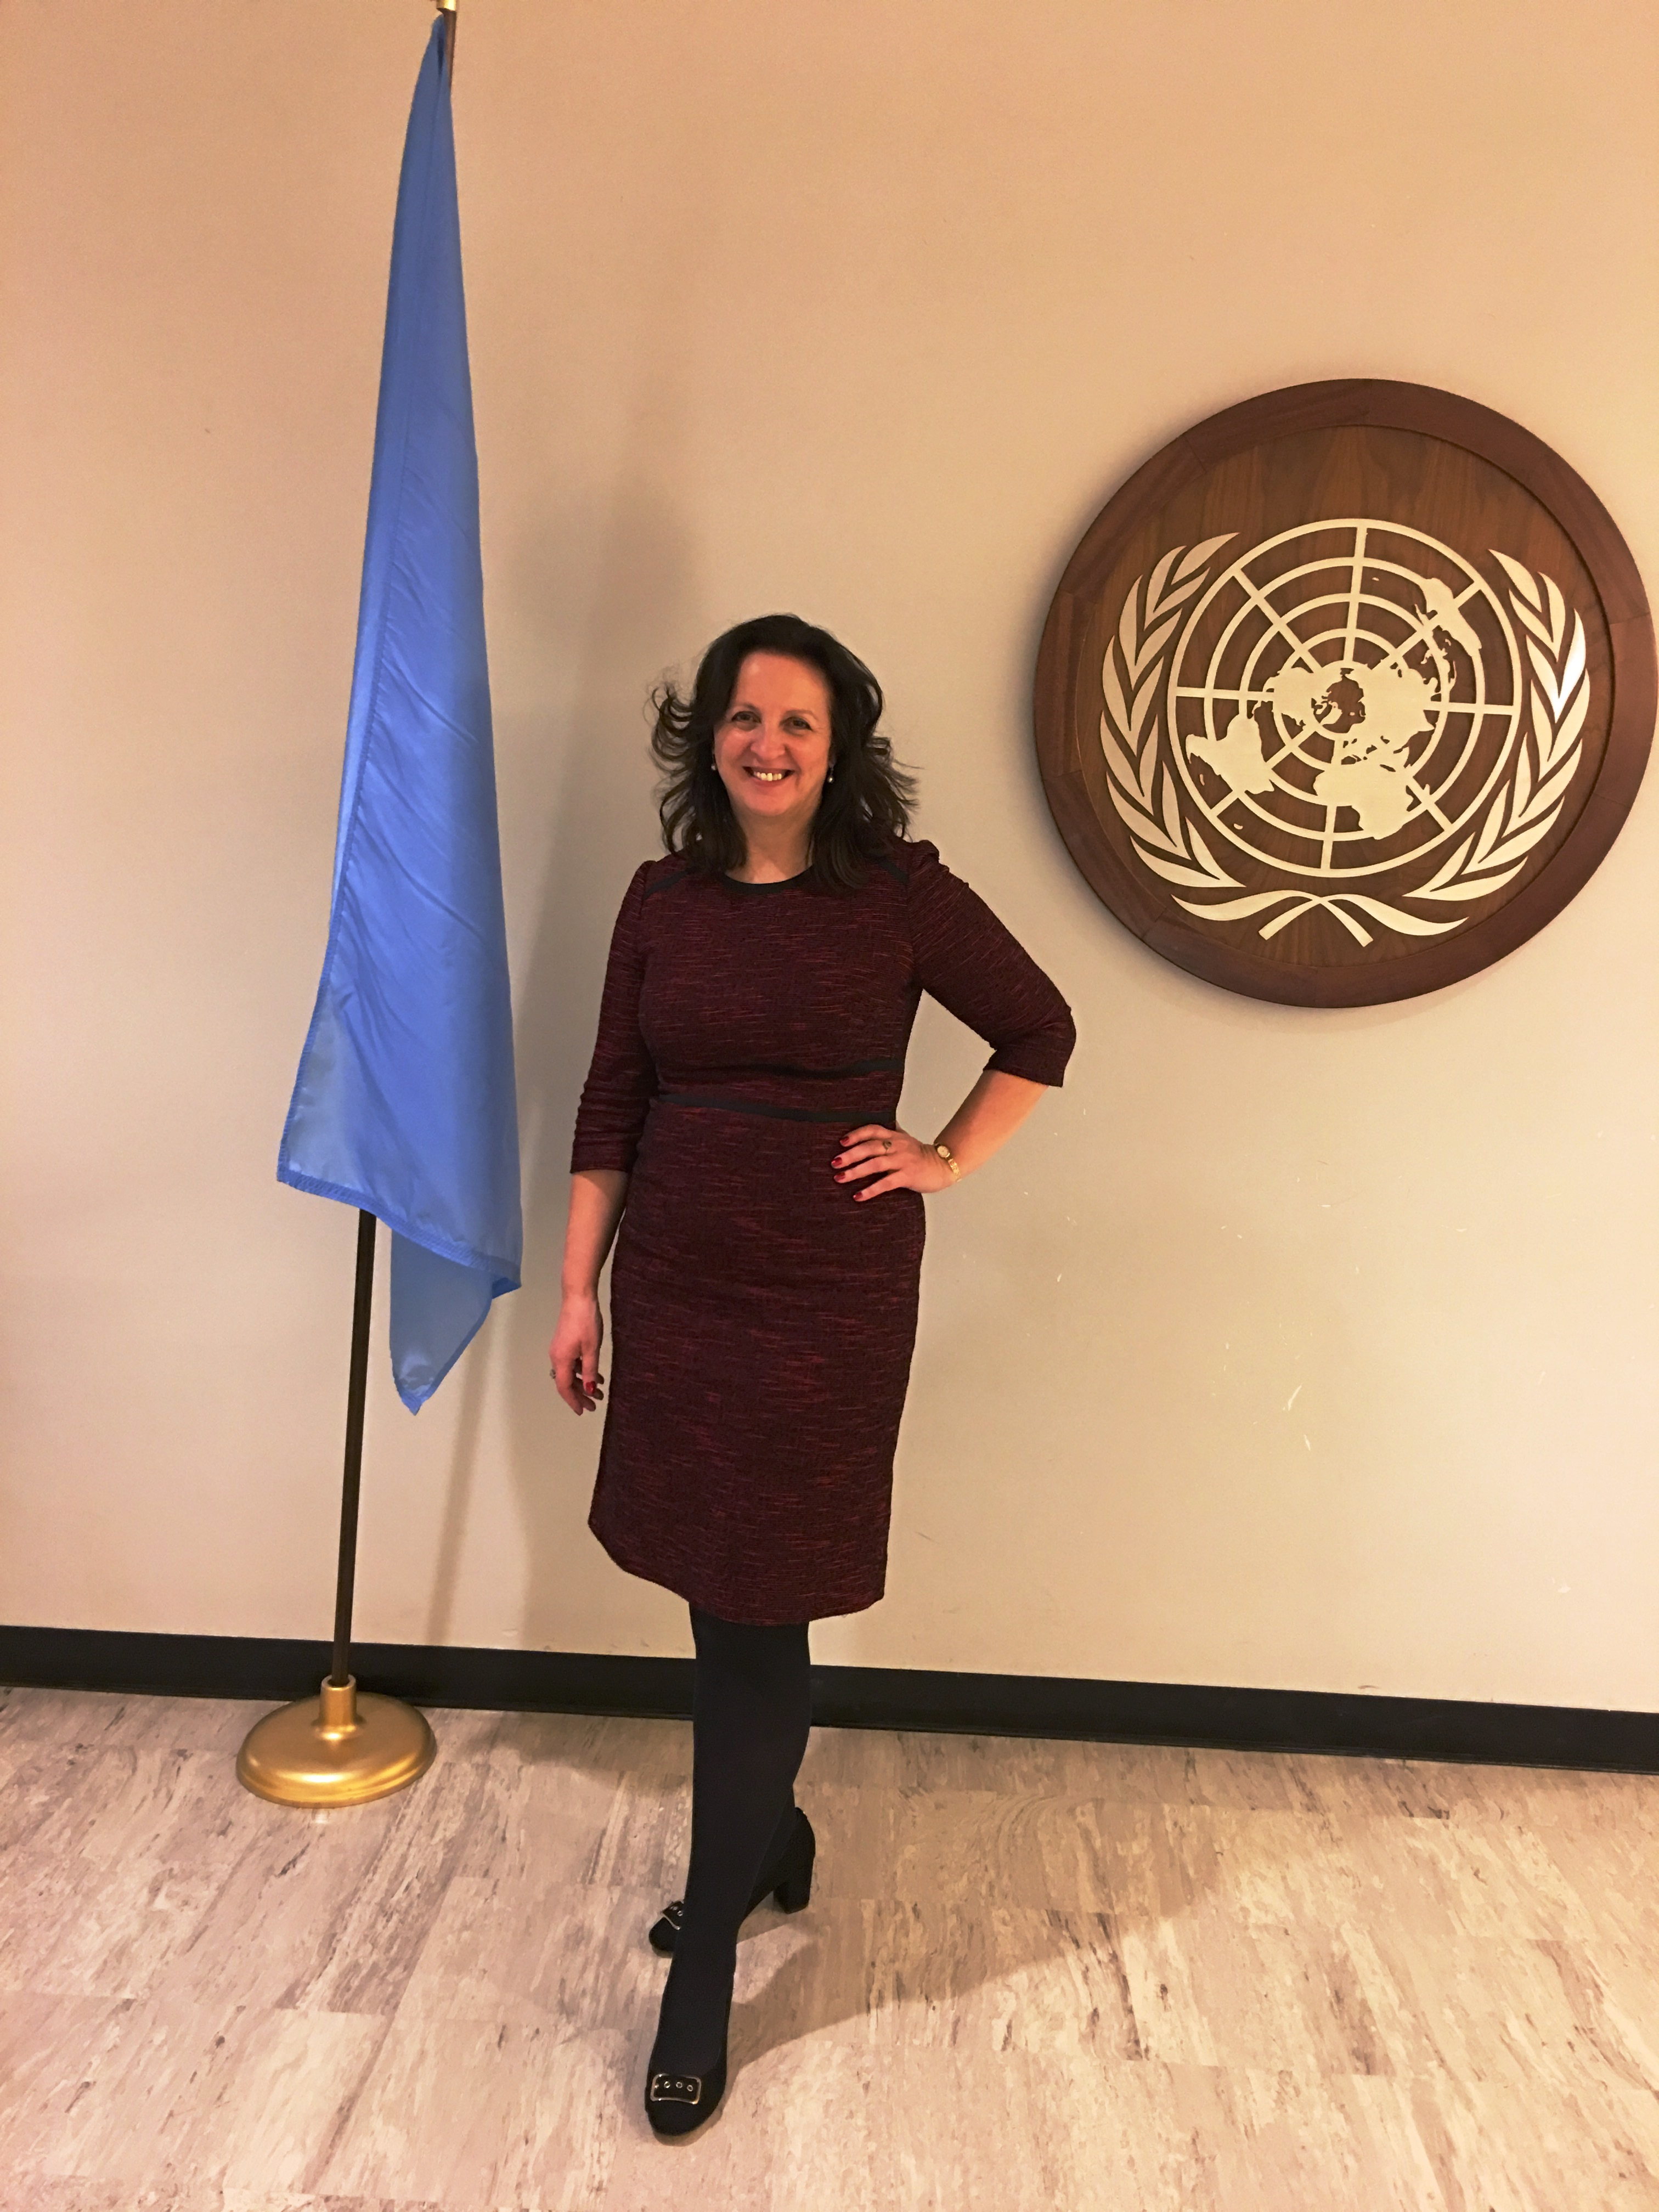 image Jacqueline Winstanley in front of the UN flag